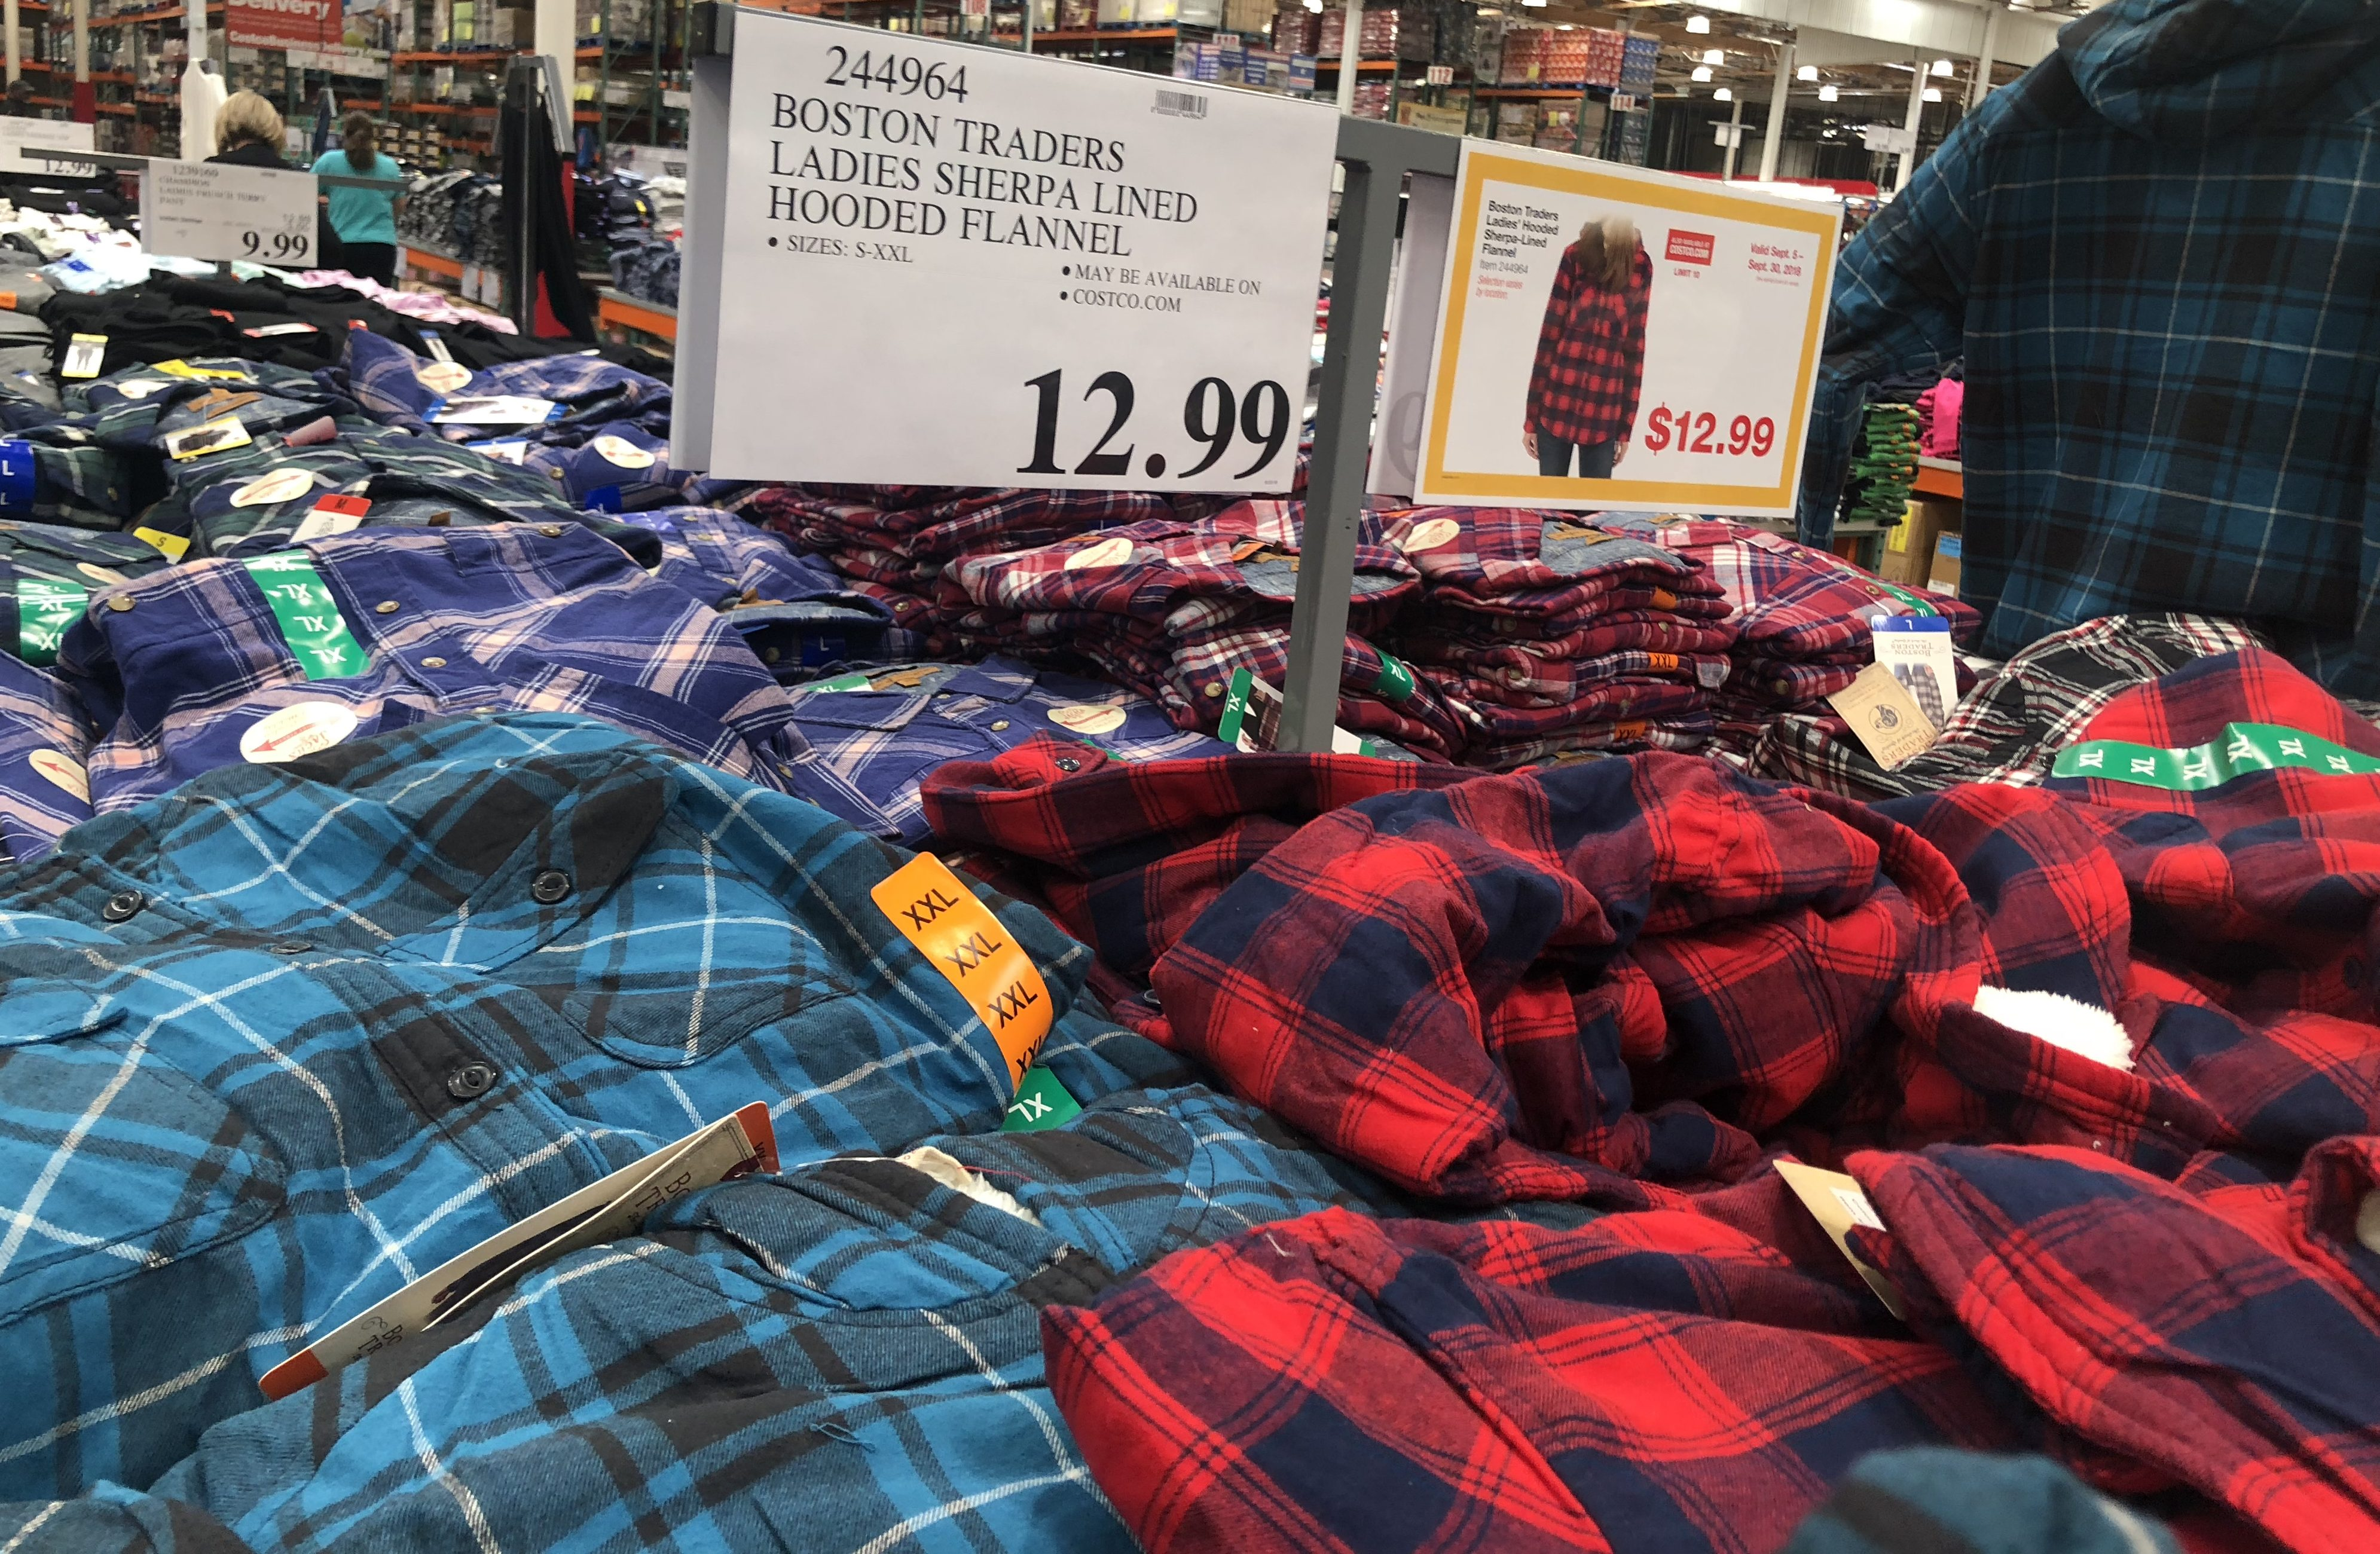 Costco Monthly Deals for September 2018 - Women's Sherpa Flannels at Costco